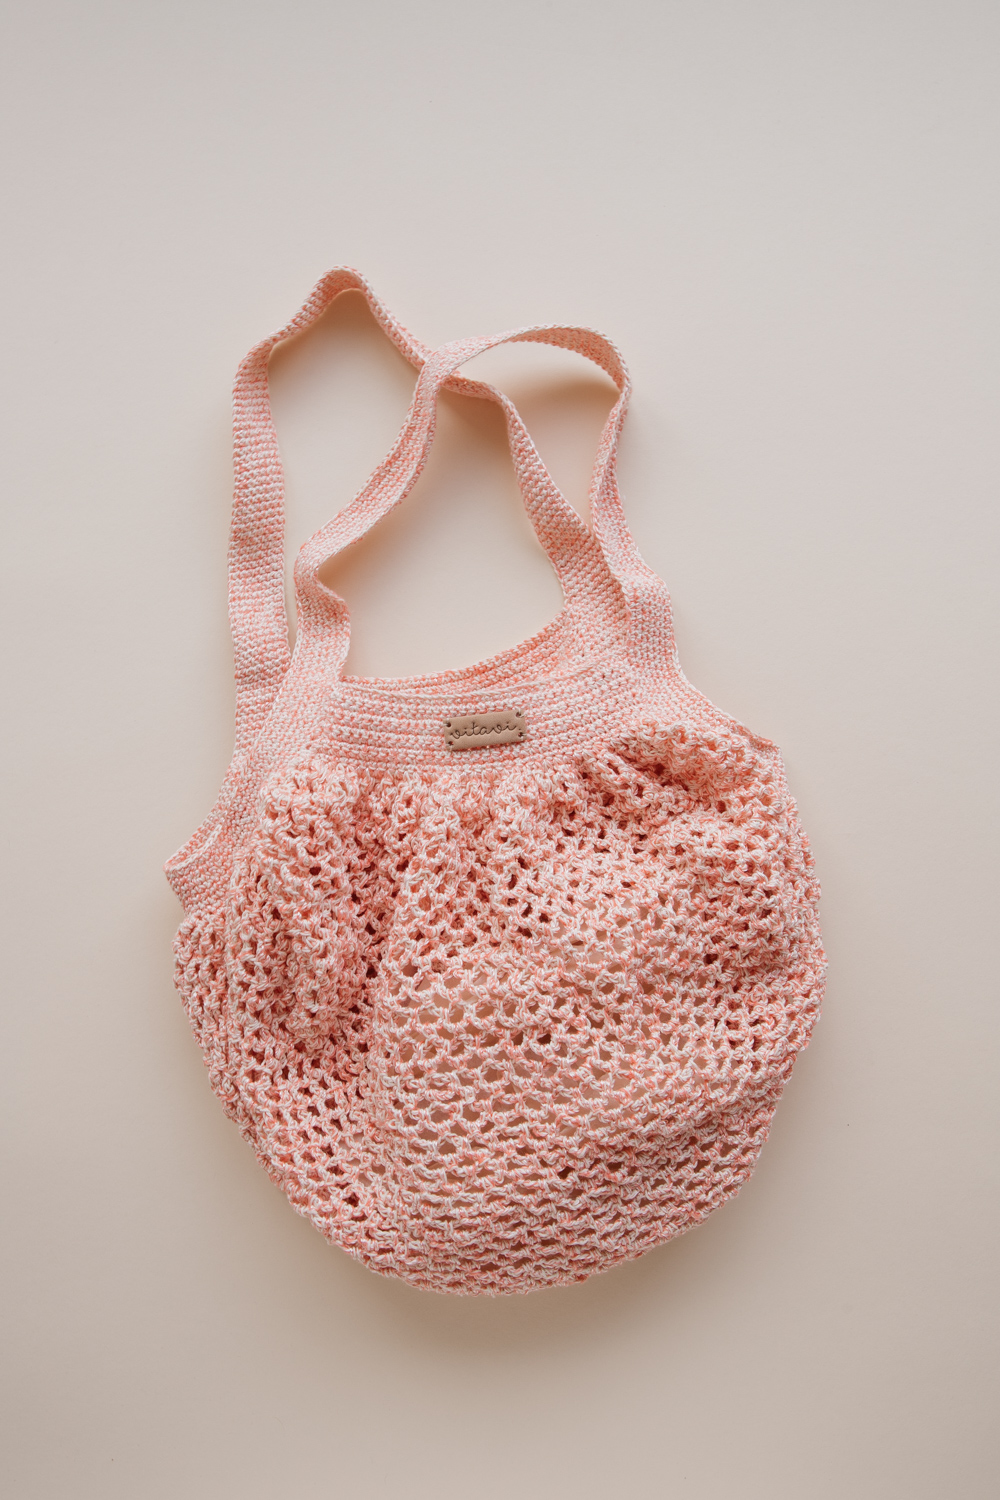 Crochet Net Bag - Pink